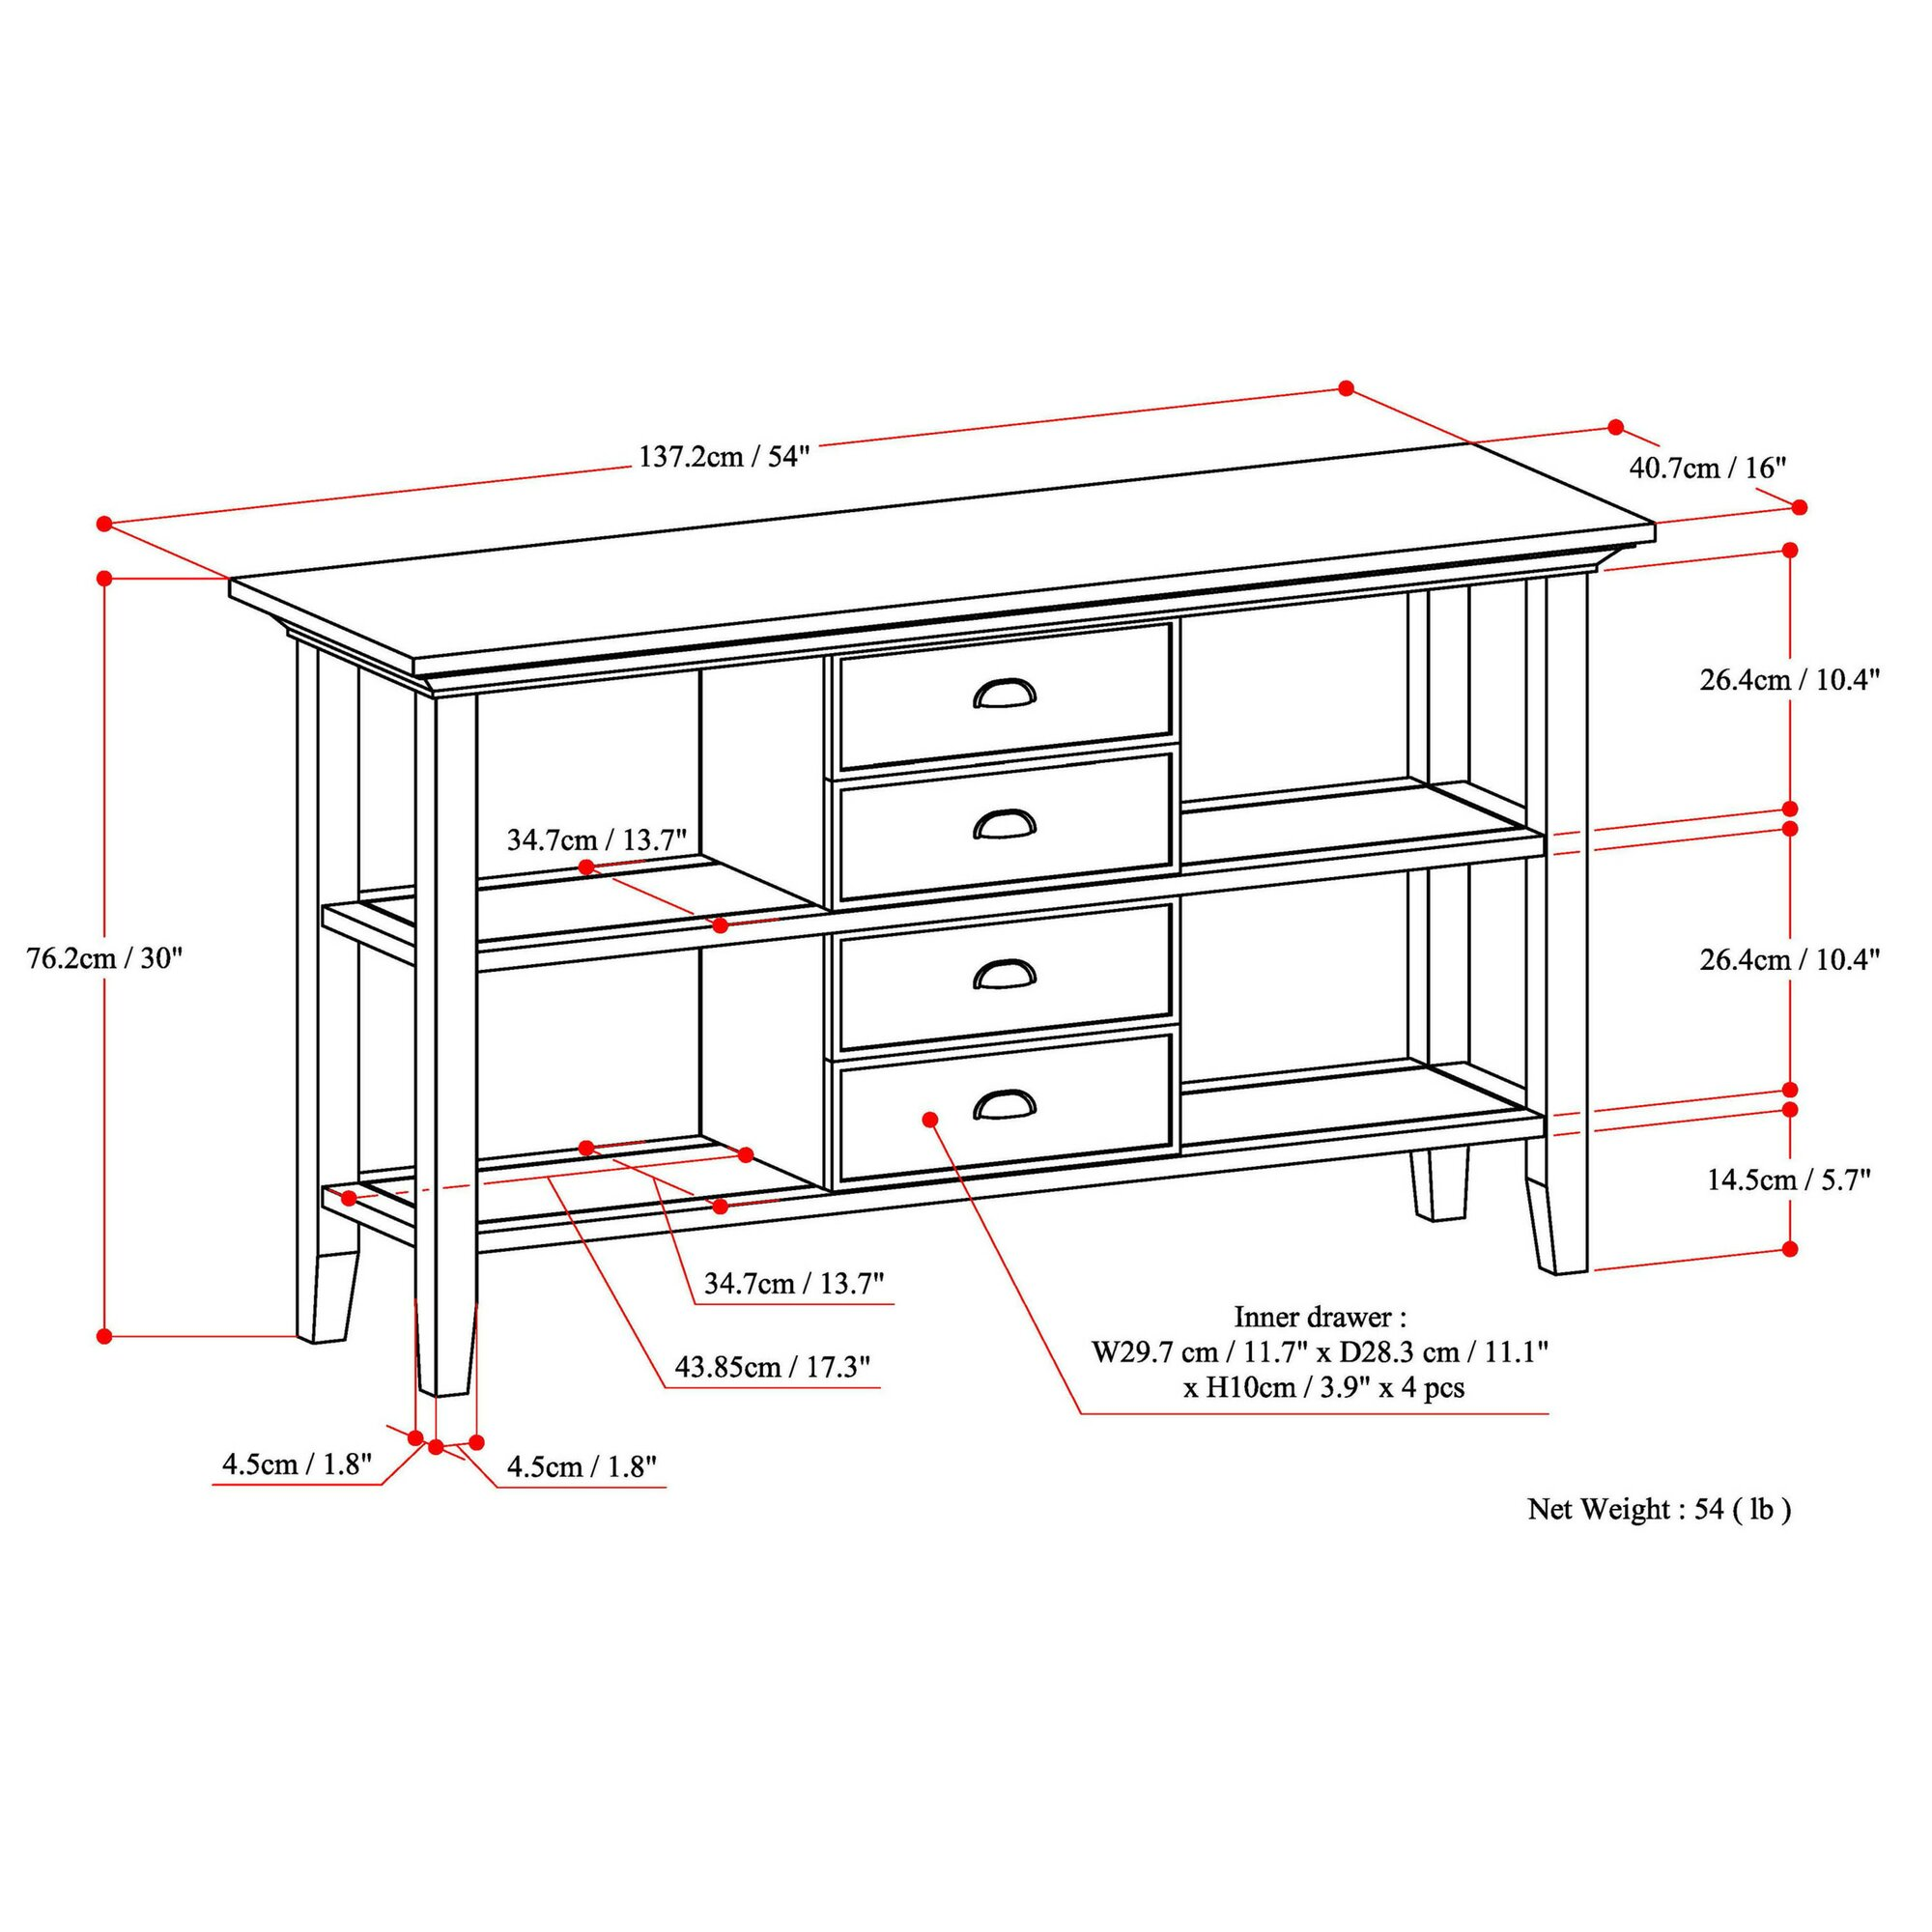 Ikea Hemnes Queen Bed Parts moreover pact Sofa Full Size And Cabi s Wall System likewise Bunk Bed Dimensions besides Master Bedroom And Bath Floor Plans Floor Plans Pictures Top Luxury Master In Master Bedroom Floor Plans additionally 261788037106. on twin sofa beds